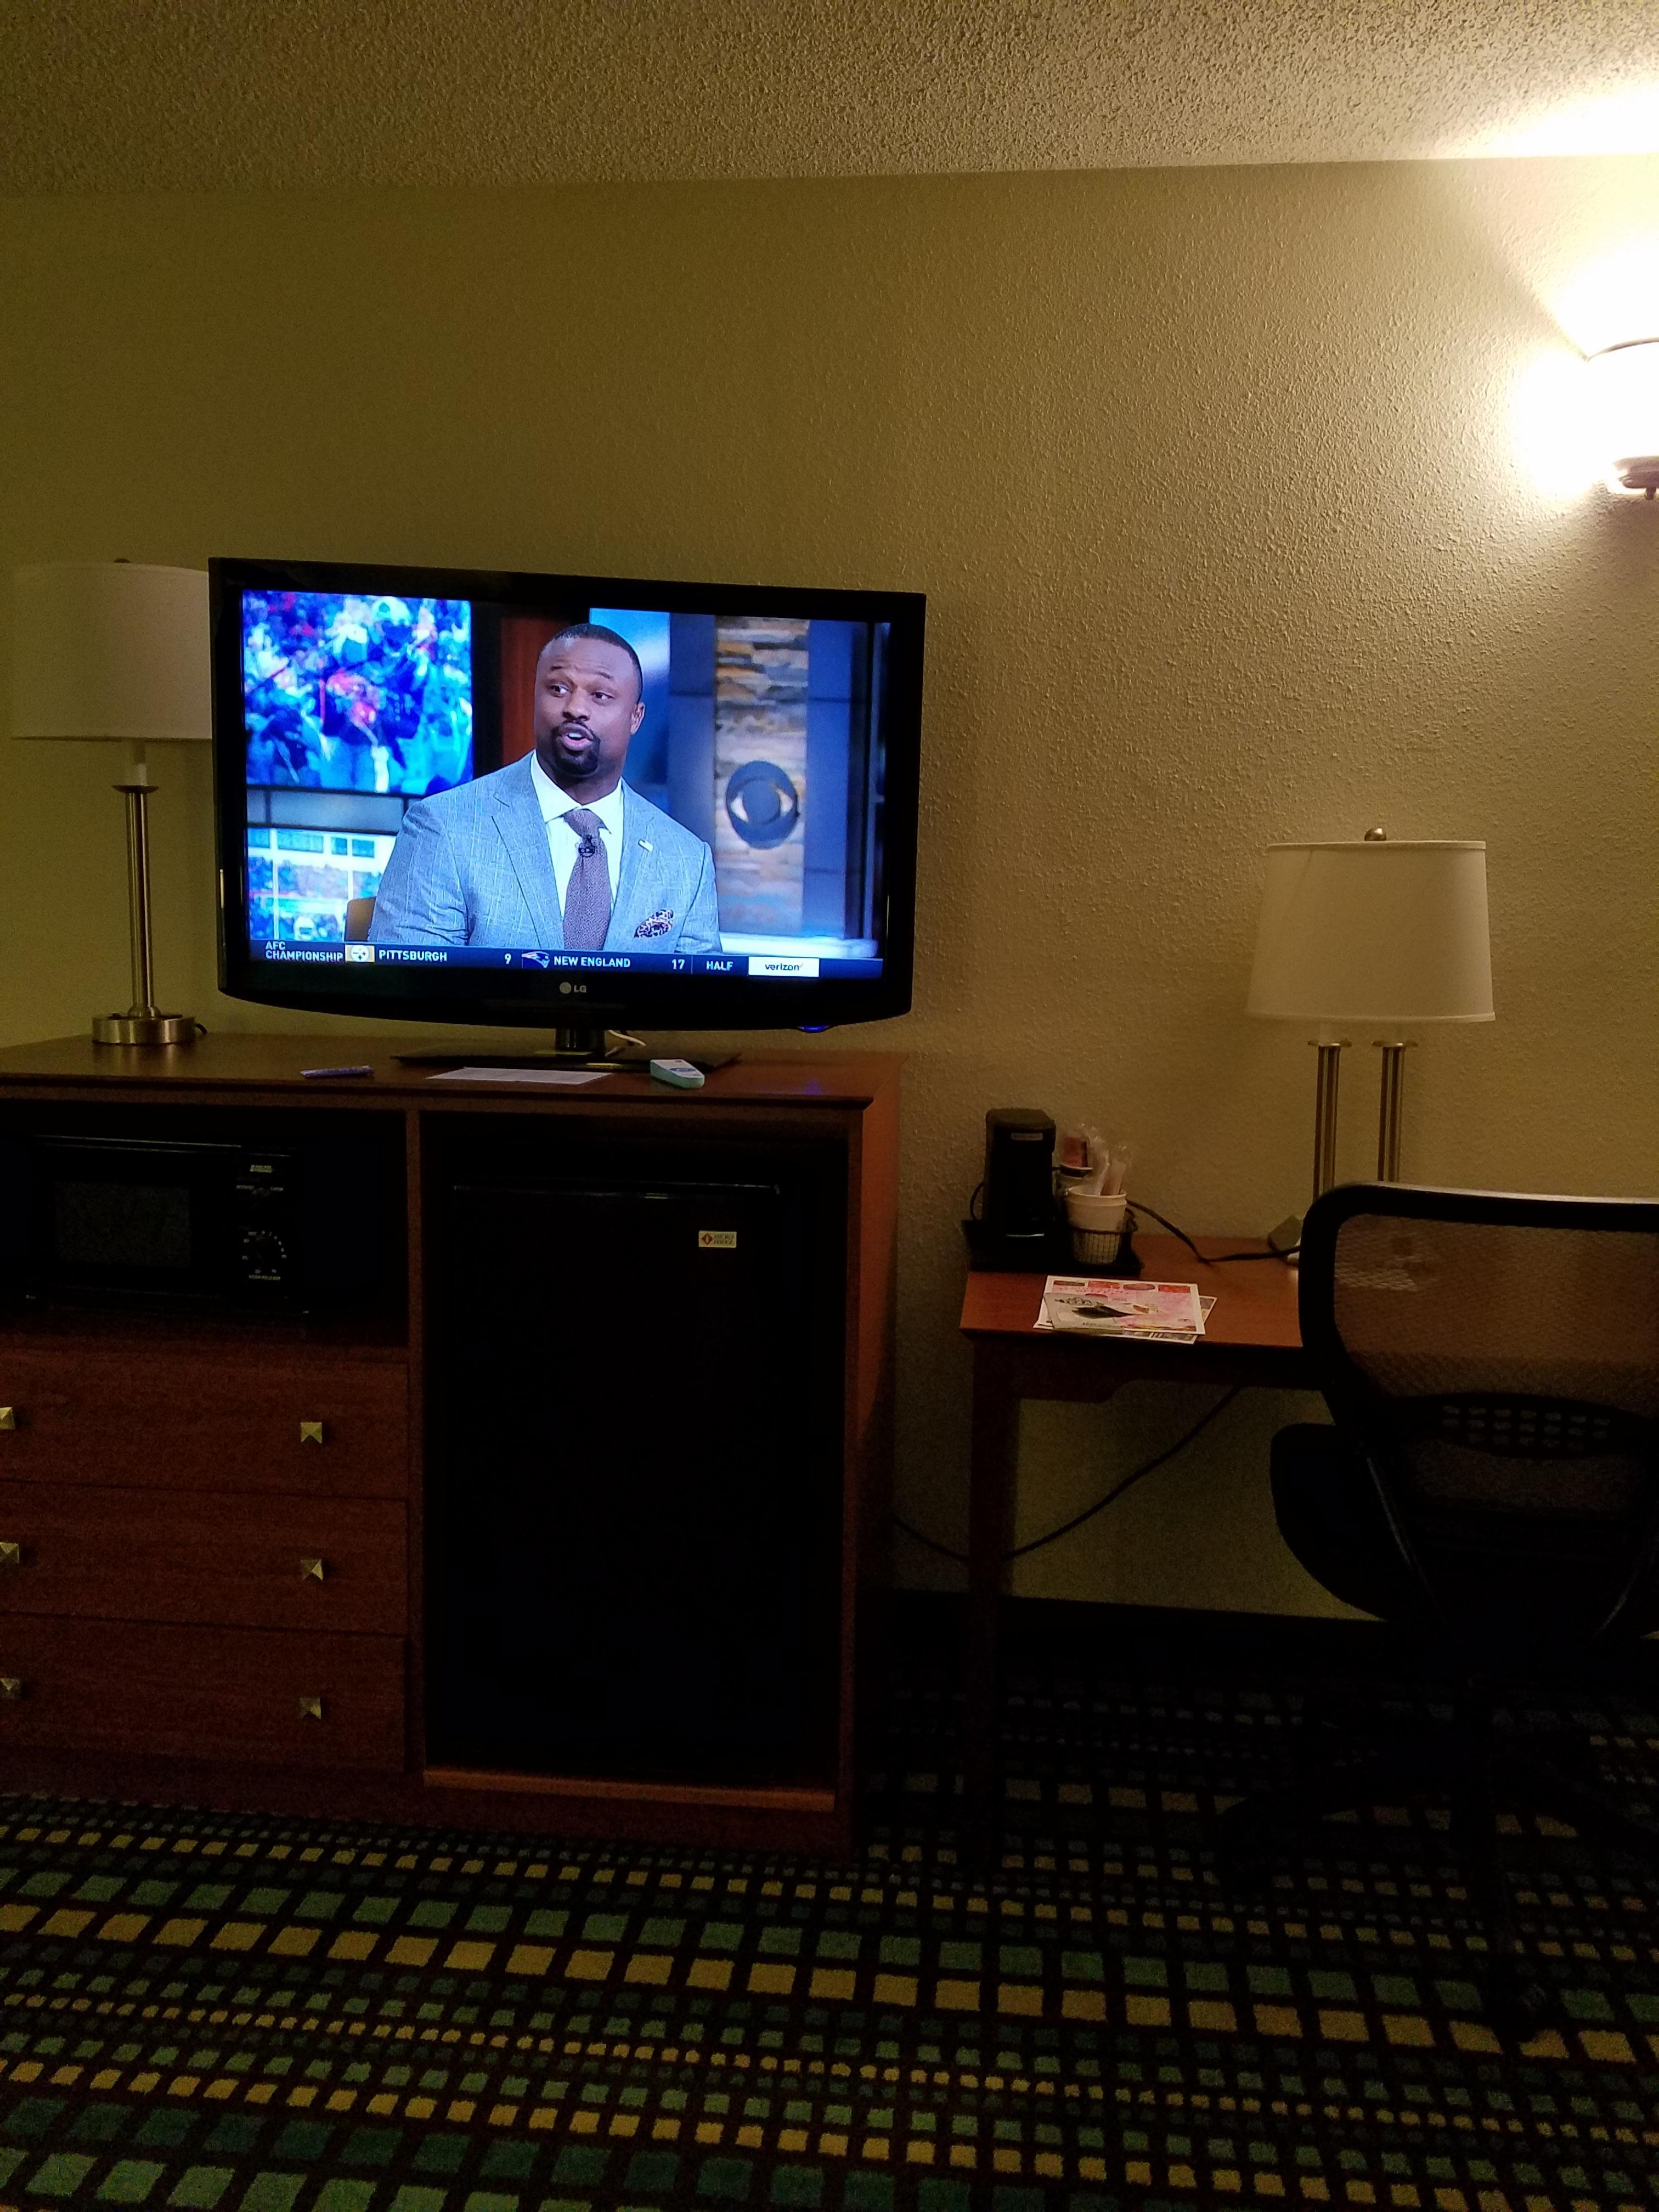 Cable and big tv